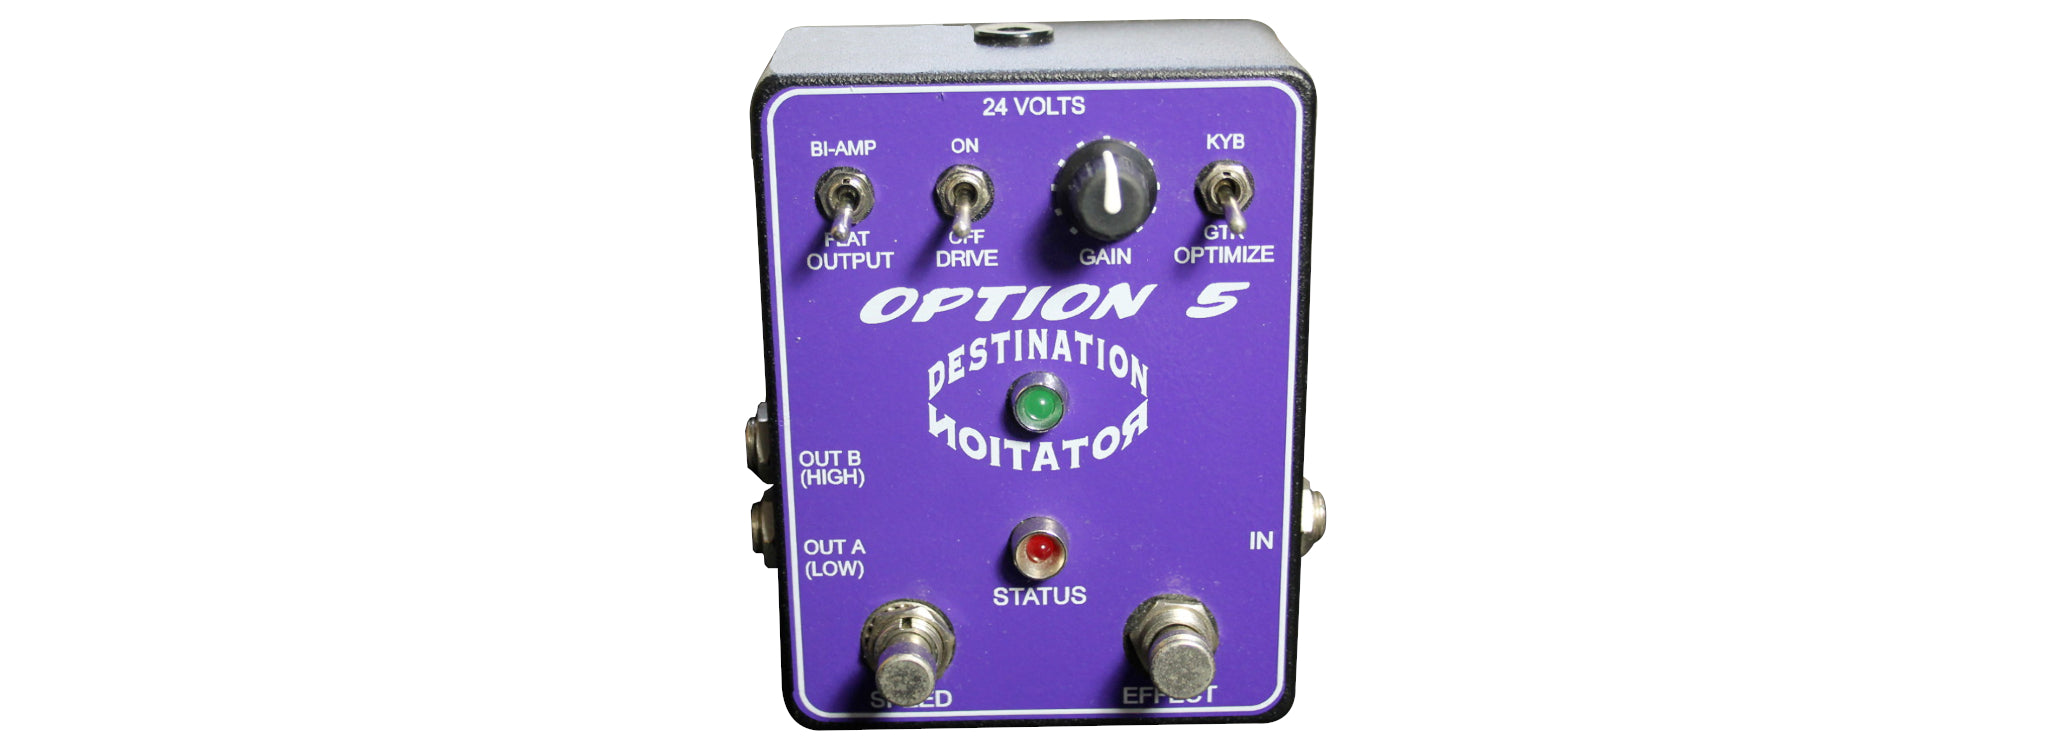 Option 5 - Destination Rotation